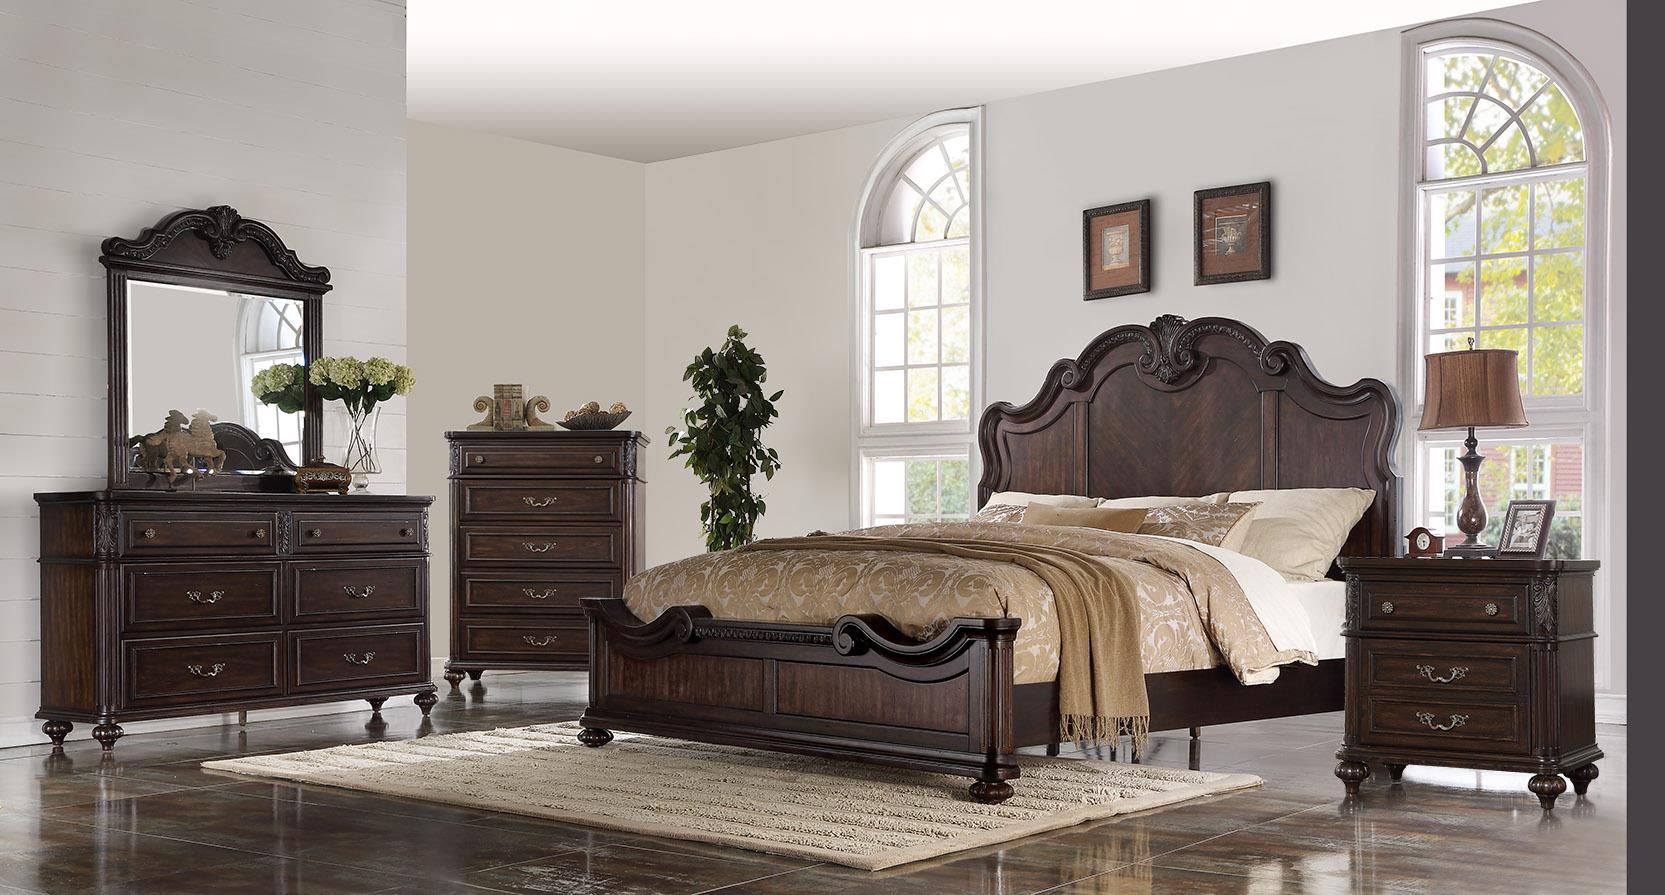 Bon 1610 Queen 5 Piece Bedroom Set